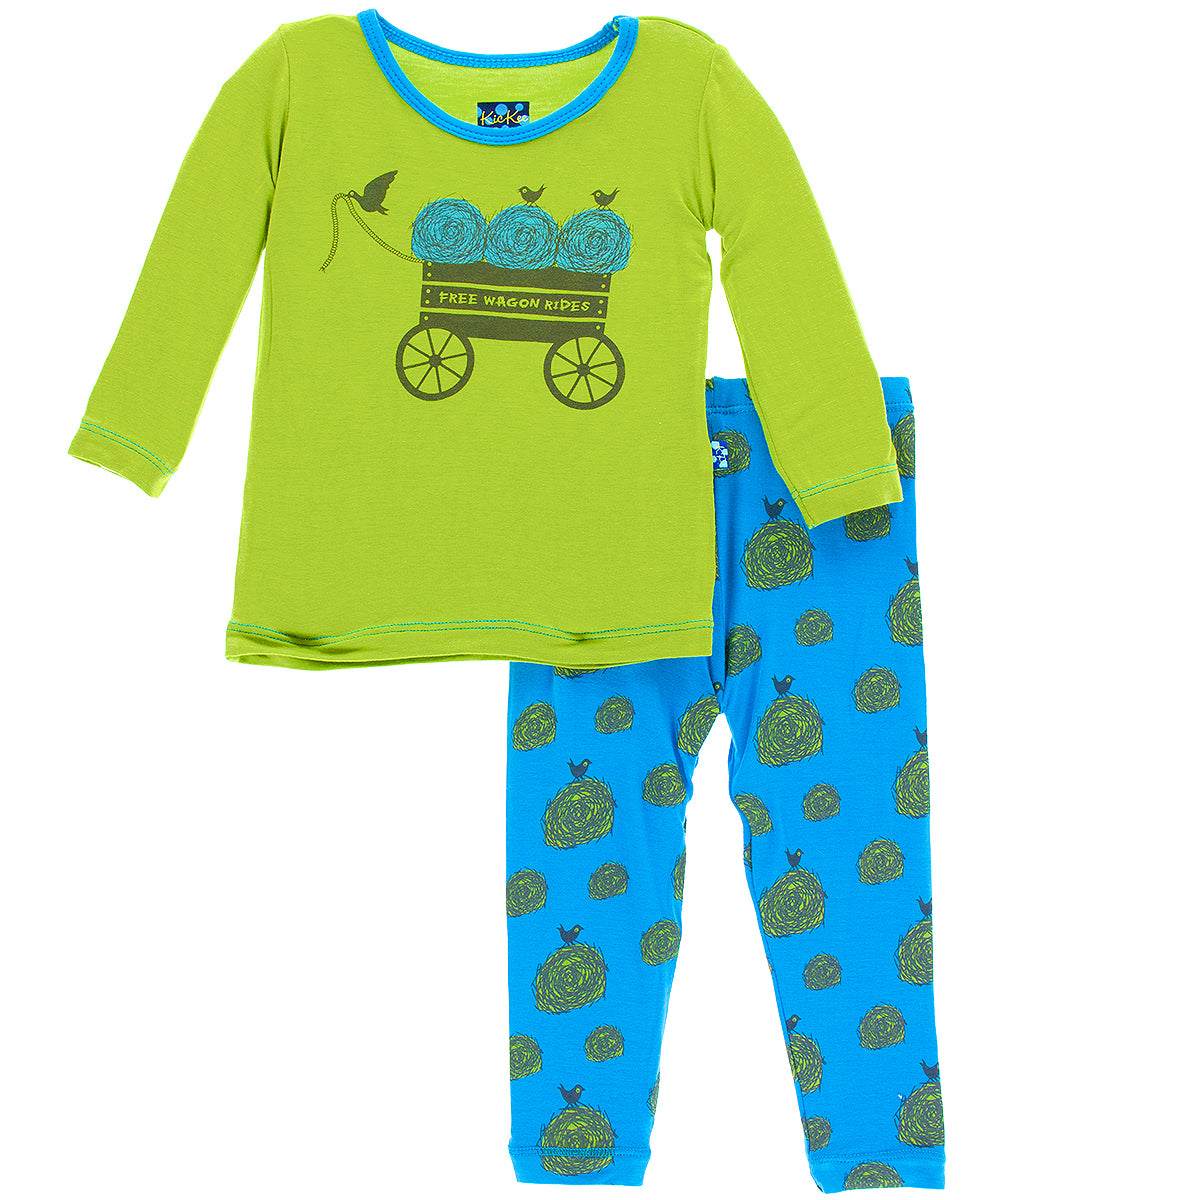 KicKee Pants River Hay Bales Long Sleeve Pajama Set - kkgivingtree